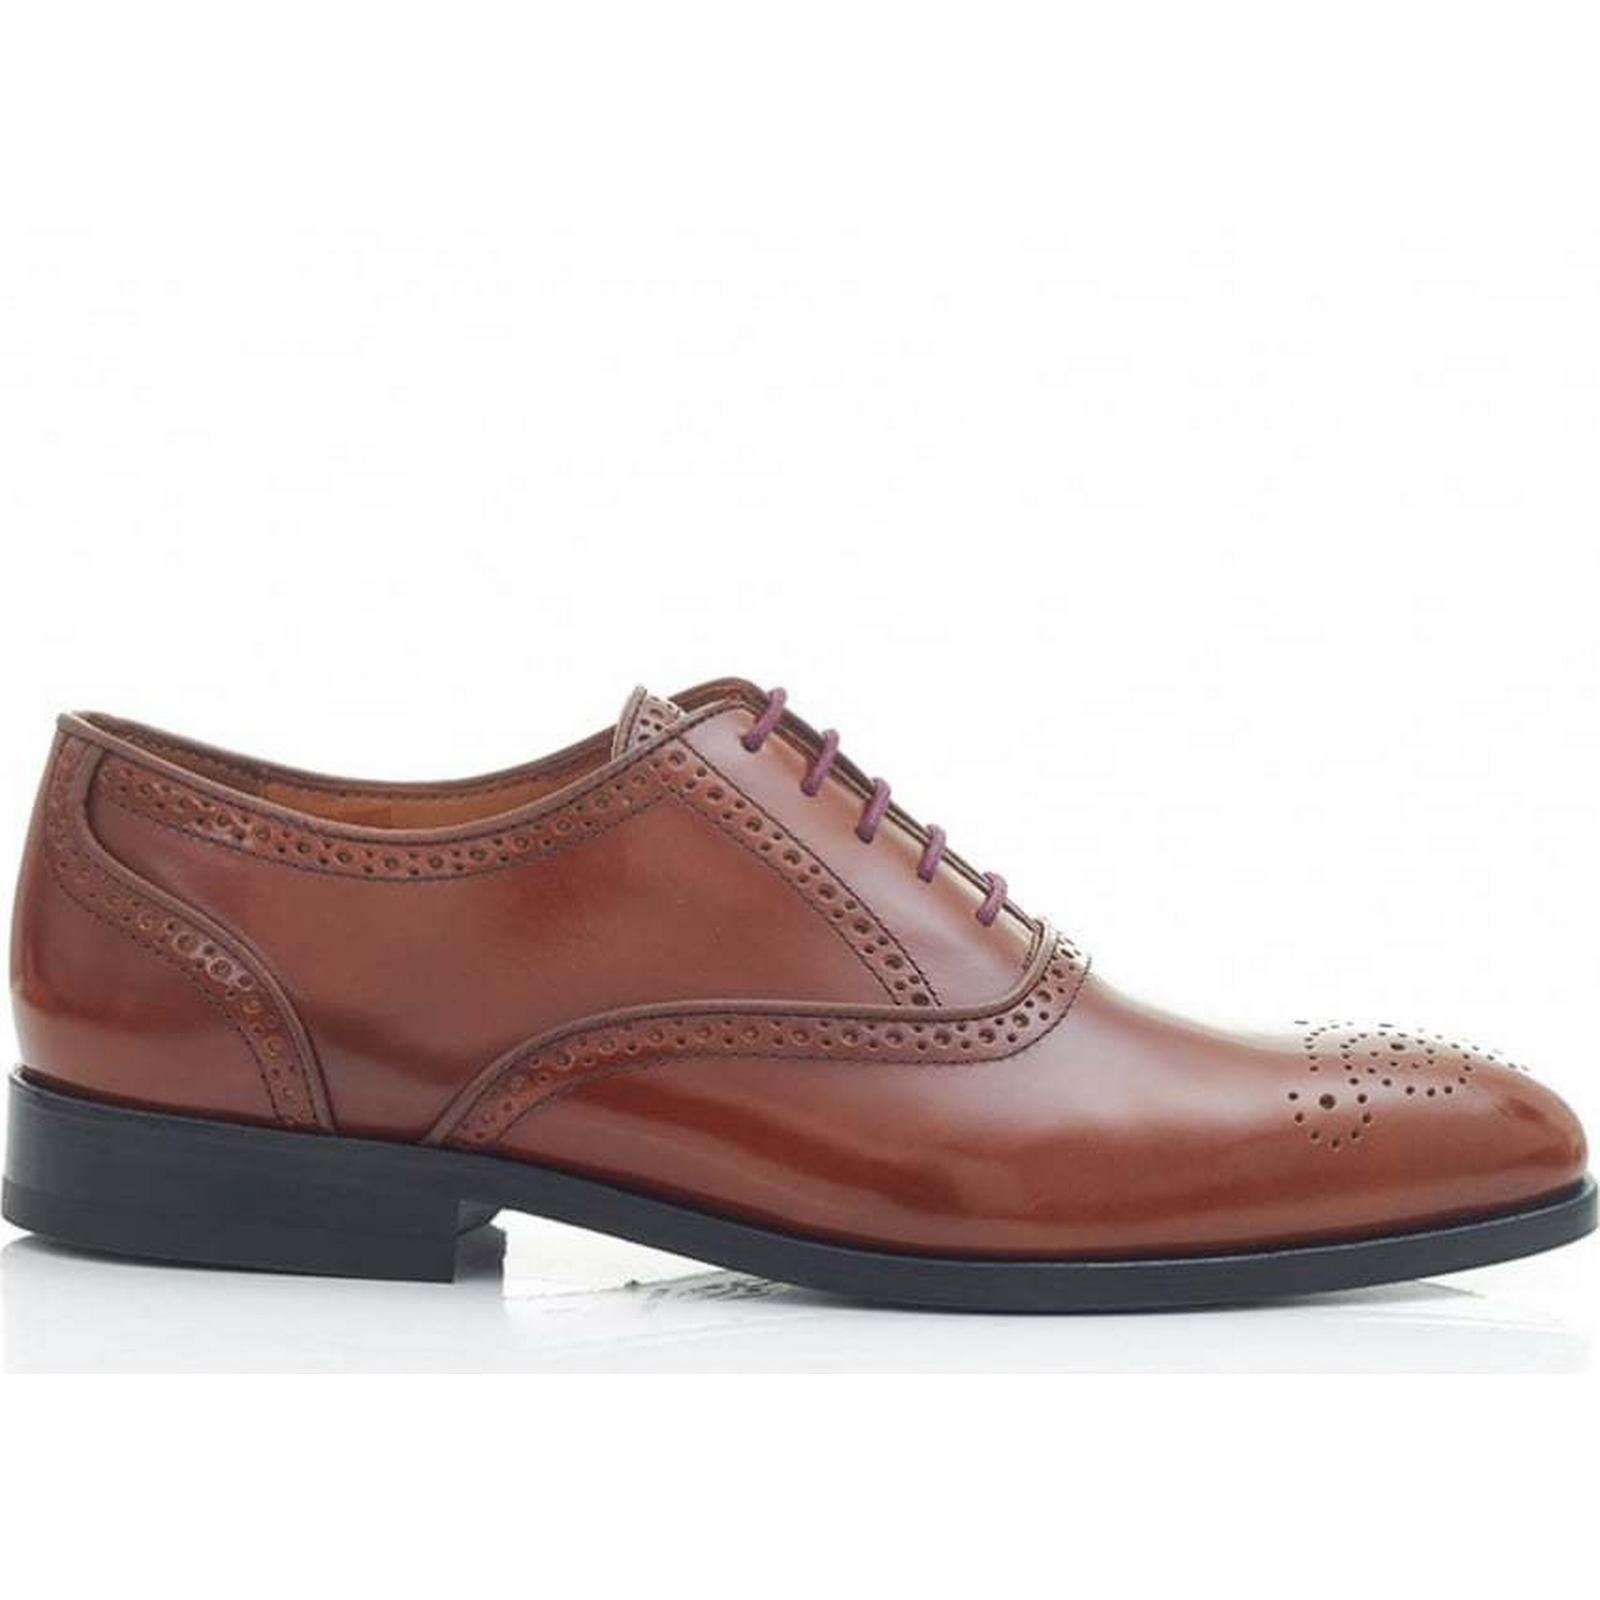 Paul Smith Gilbert TAN, High Shine Shoes Colour: TAN, Gilbert Size: 11 9dffa6